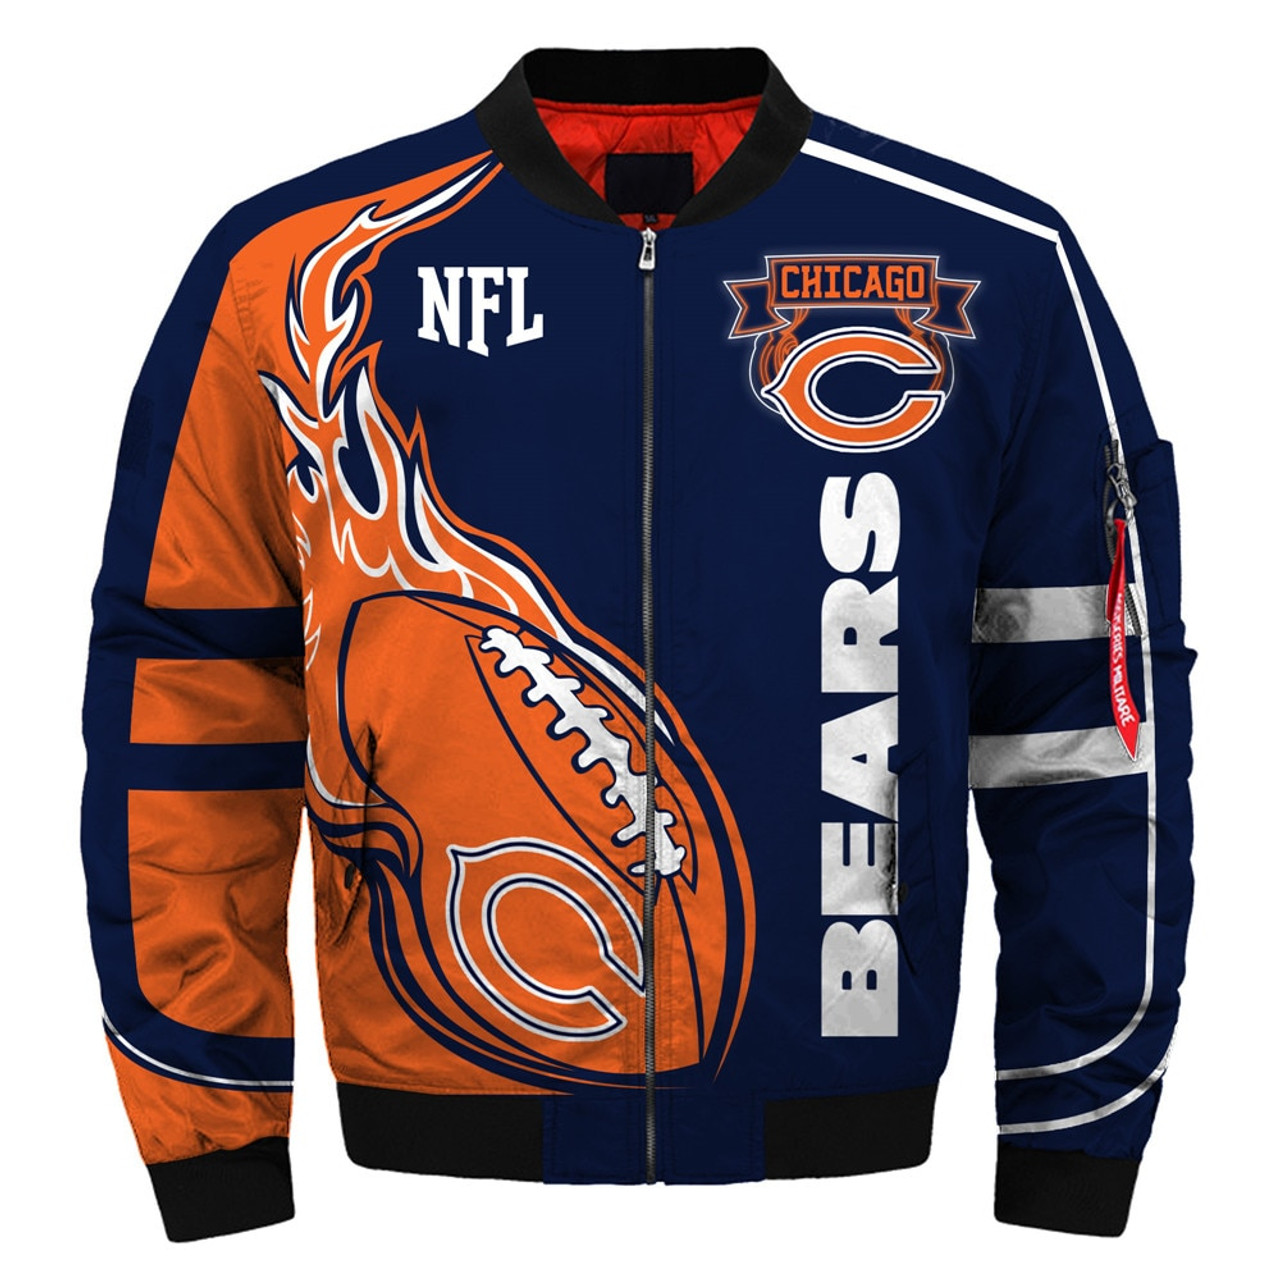 new concept 75ac9 89d7c **(OFFICIALLY-LICENSED-N.F.L.CHICAGO-BEARS & OFFICIAL-BEARS-TEAM-COLORS &  OFFICIAL-CLASSIC-BEARS-LOGOS-BOMBER/FLIGHT-JACKET & ...